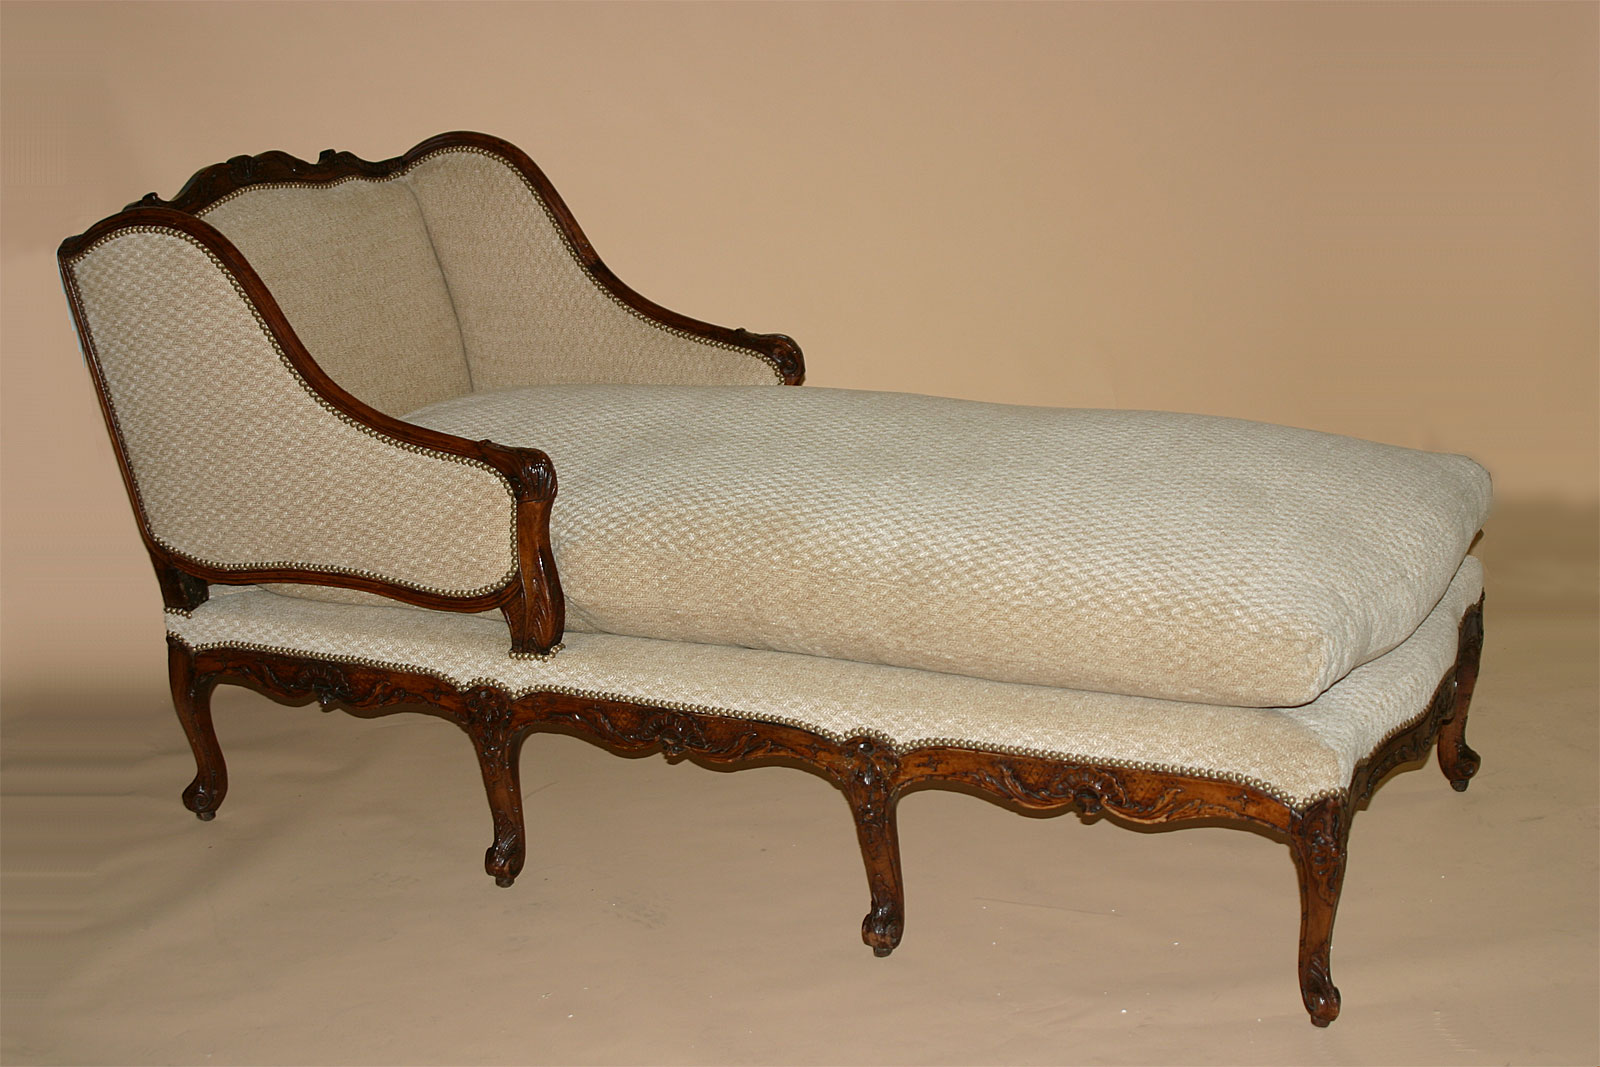 French louis xv period chaise longue for sale antiques for Antique french chaise longue